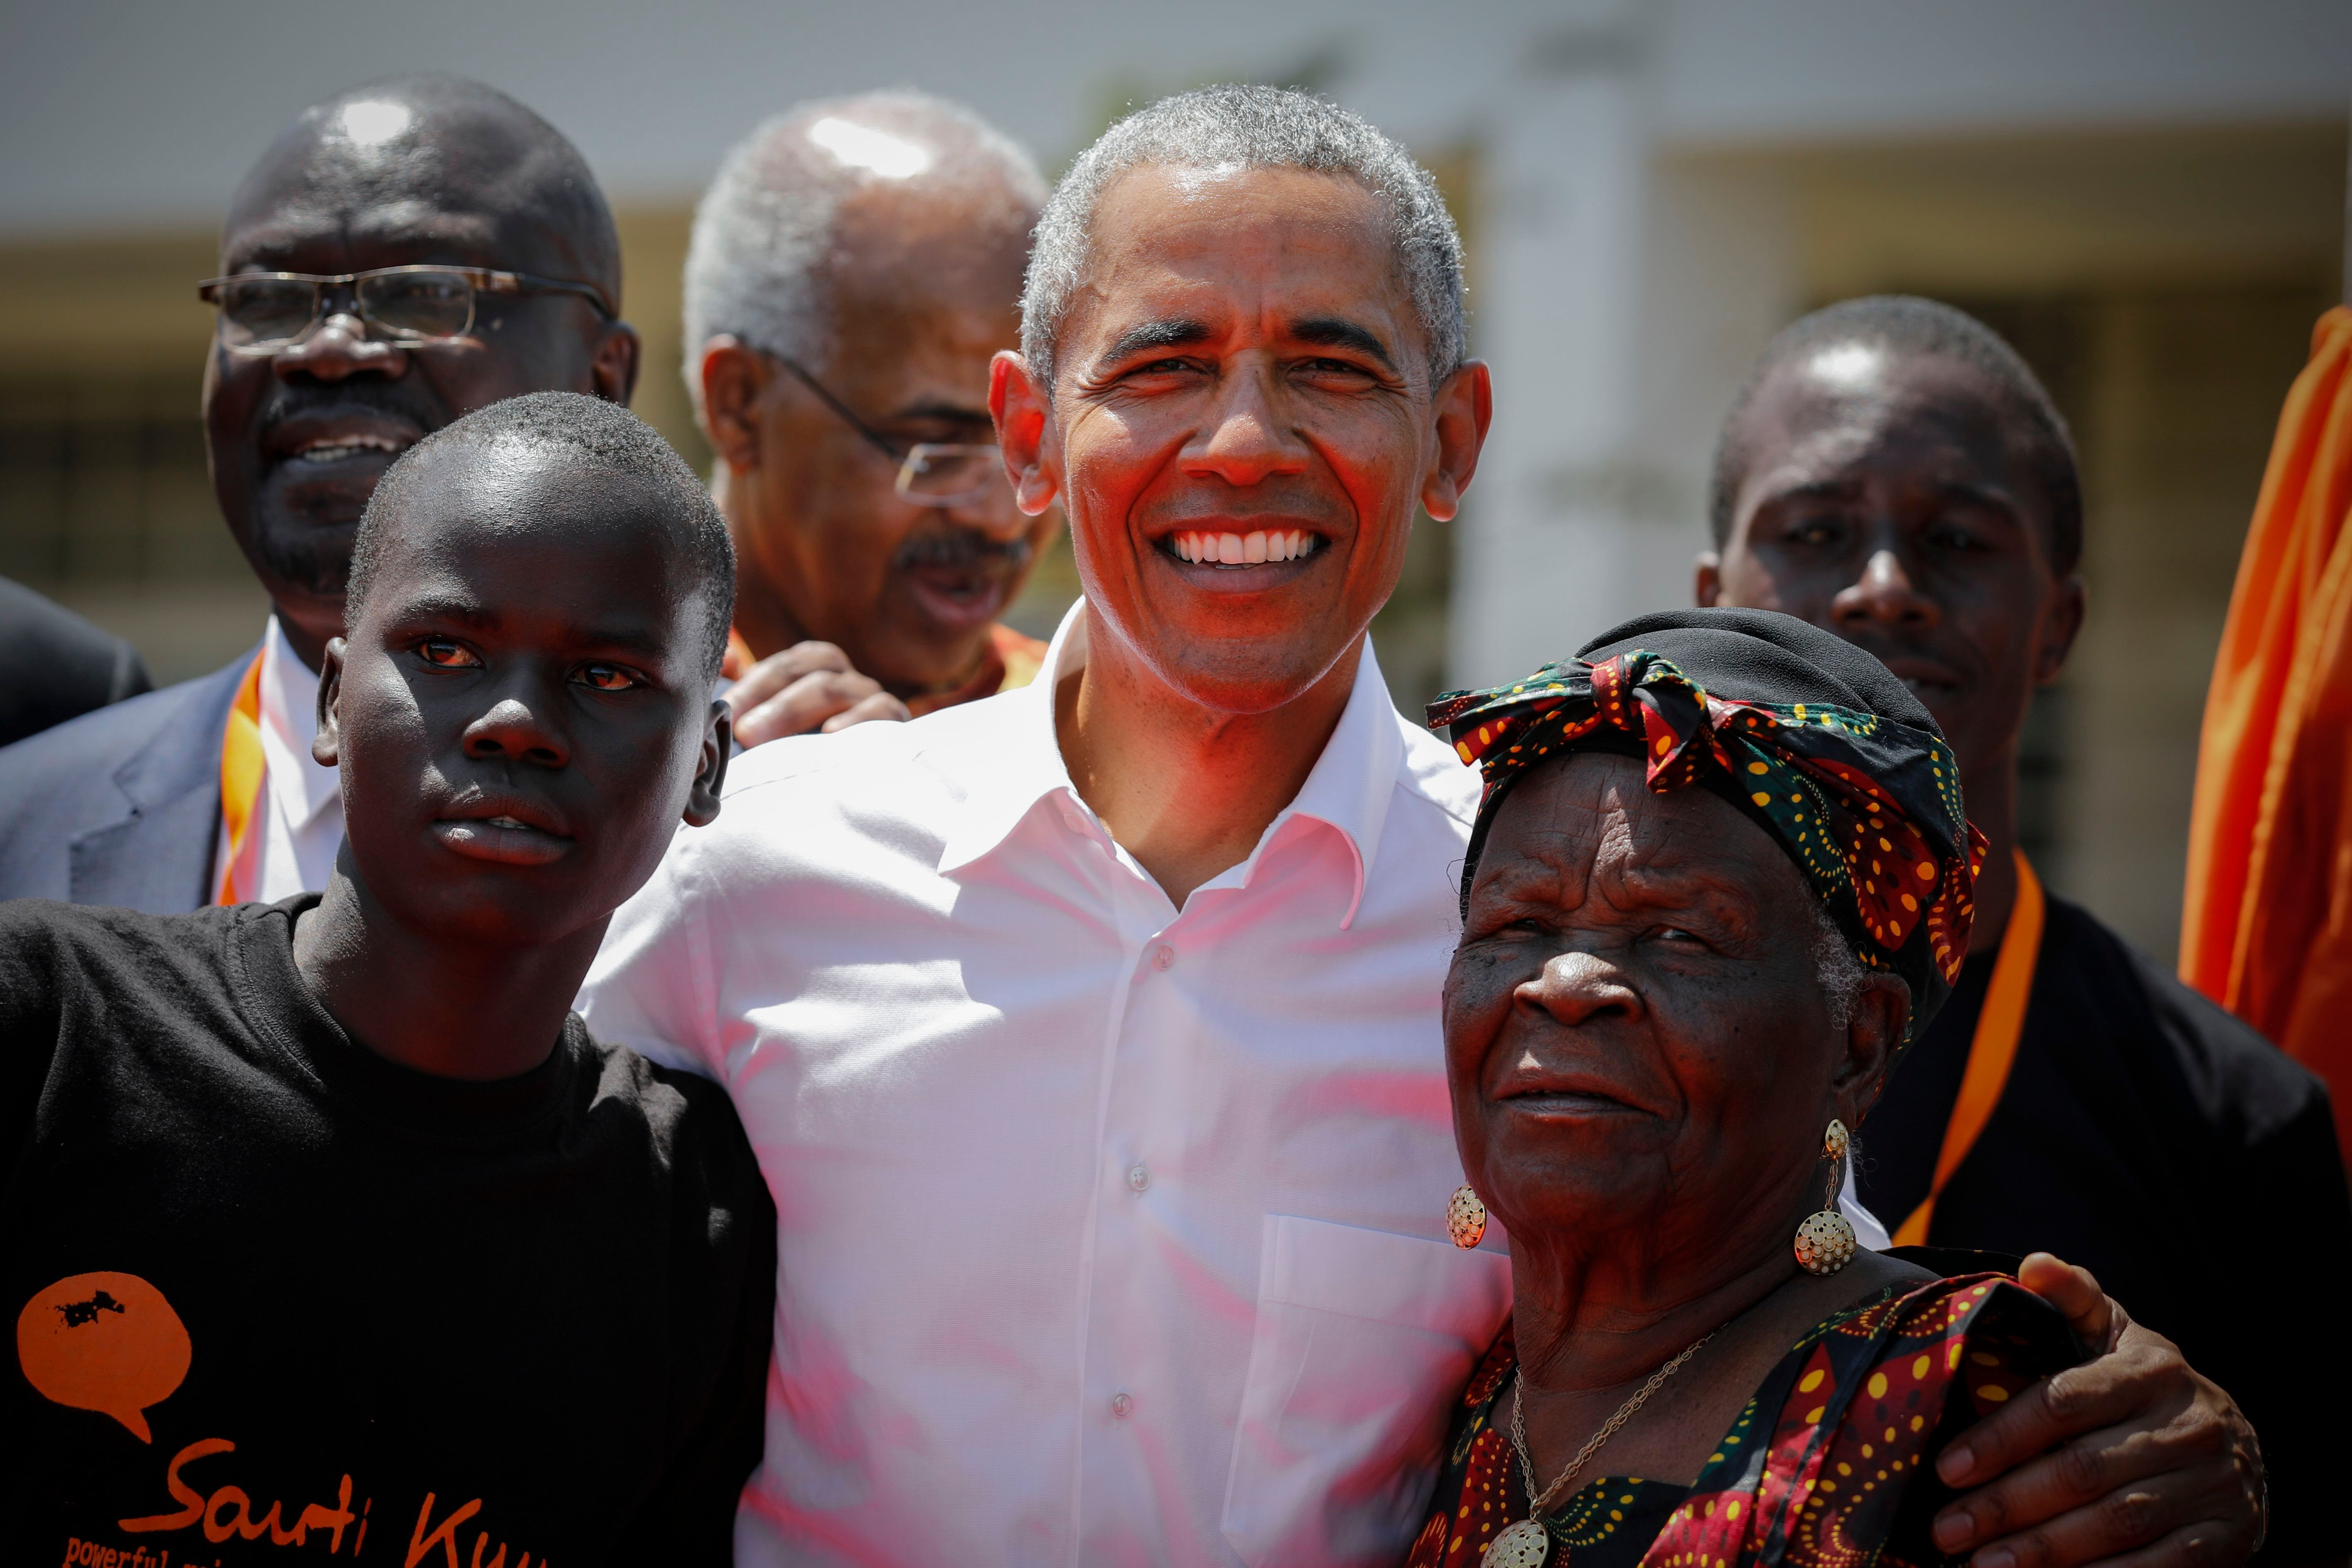 President Barack Obama Visits South Africa and Kenya